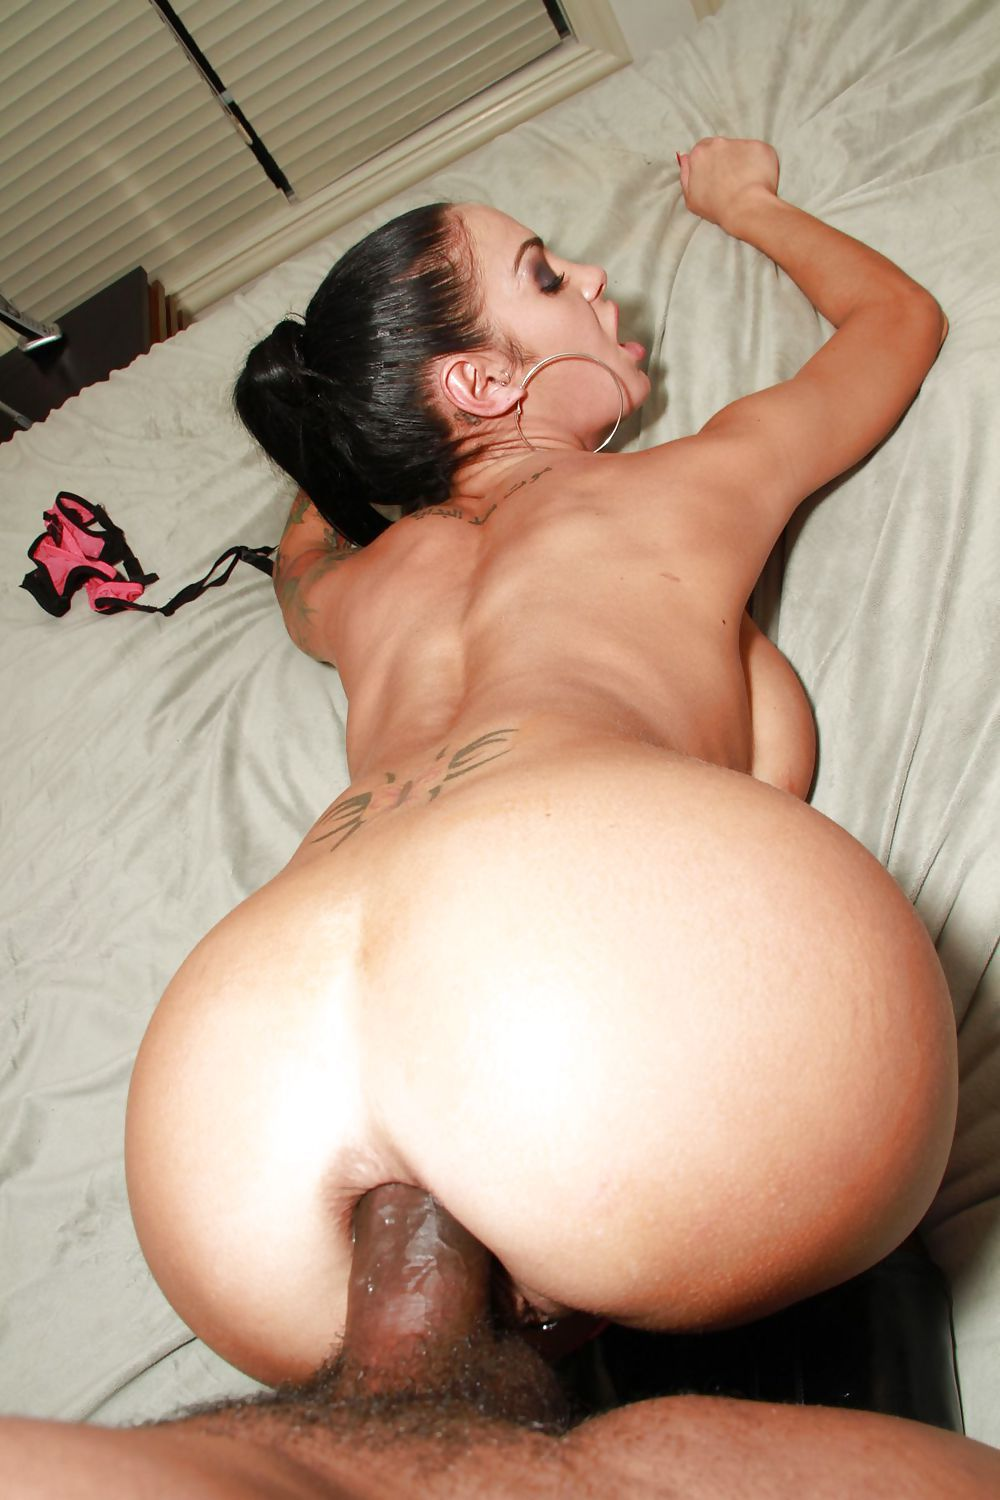 joiedumariage:  Now take it out and let me see her gape, bro.